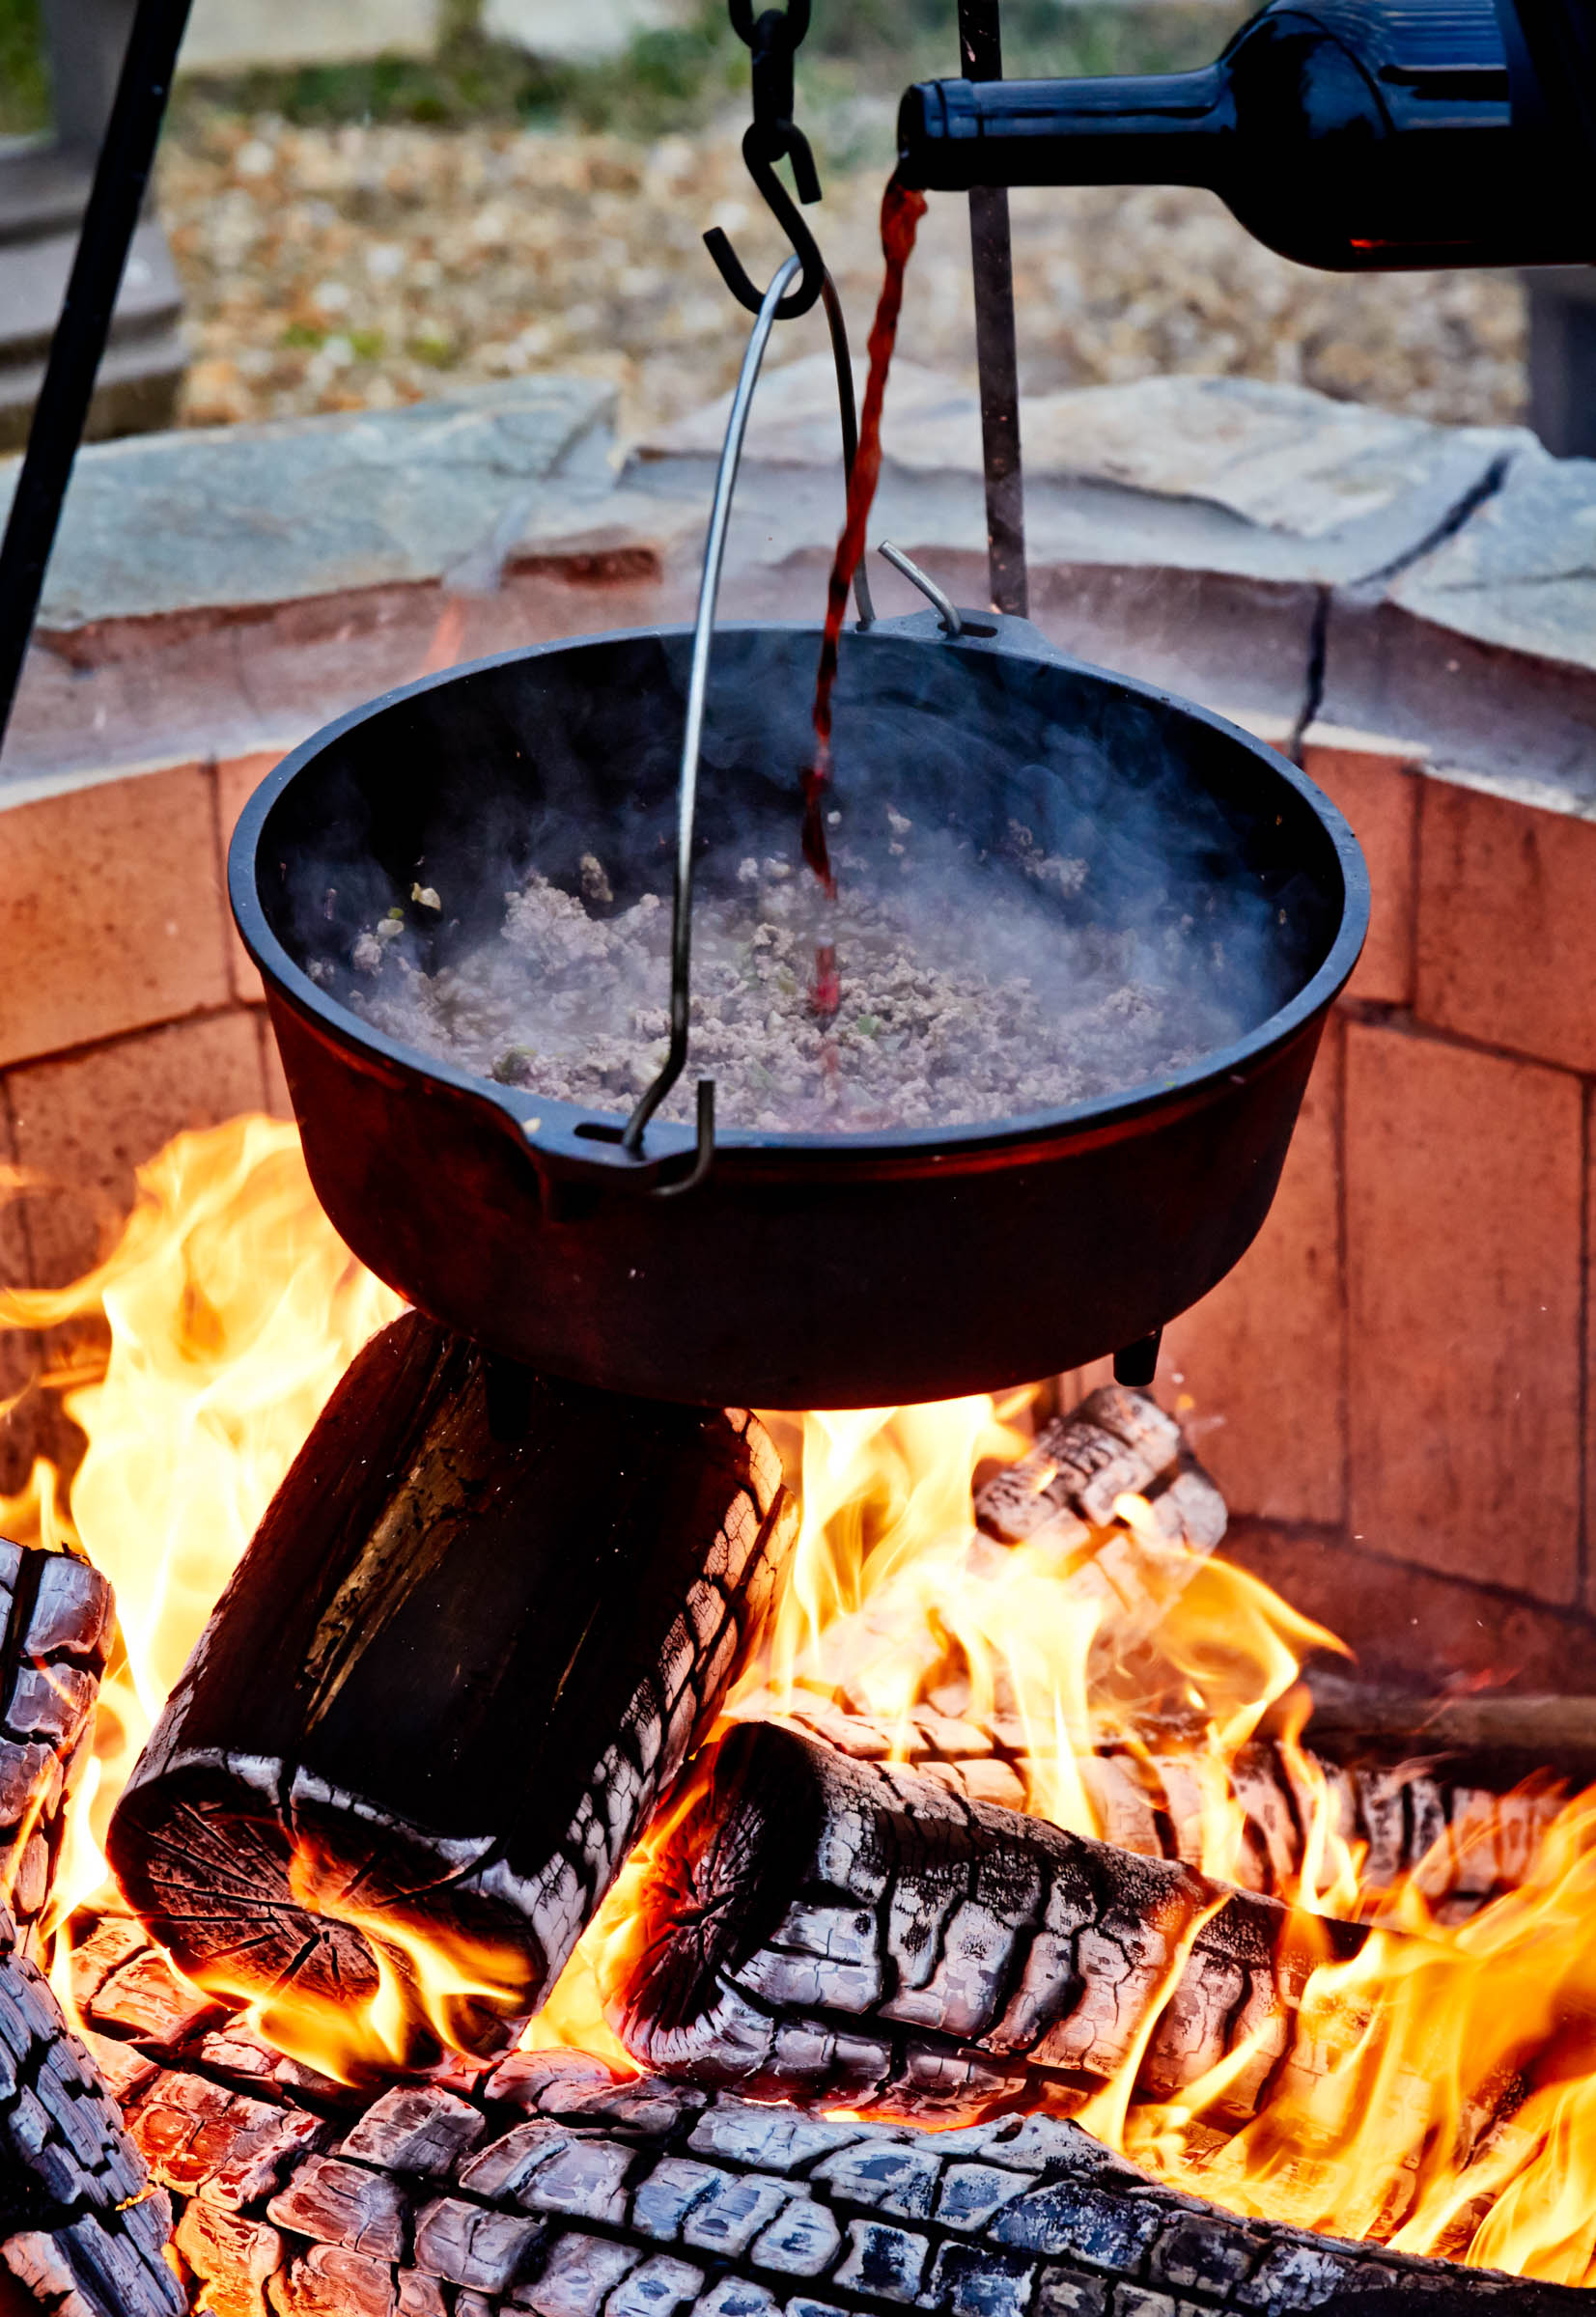 cowboy chili cooking over the fire